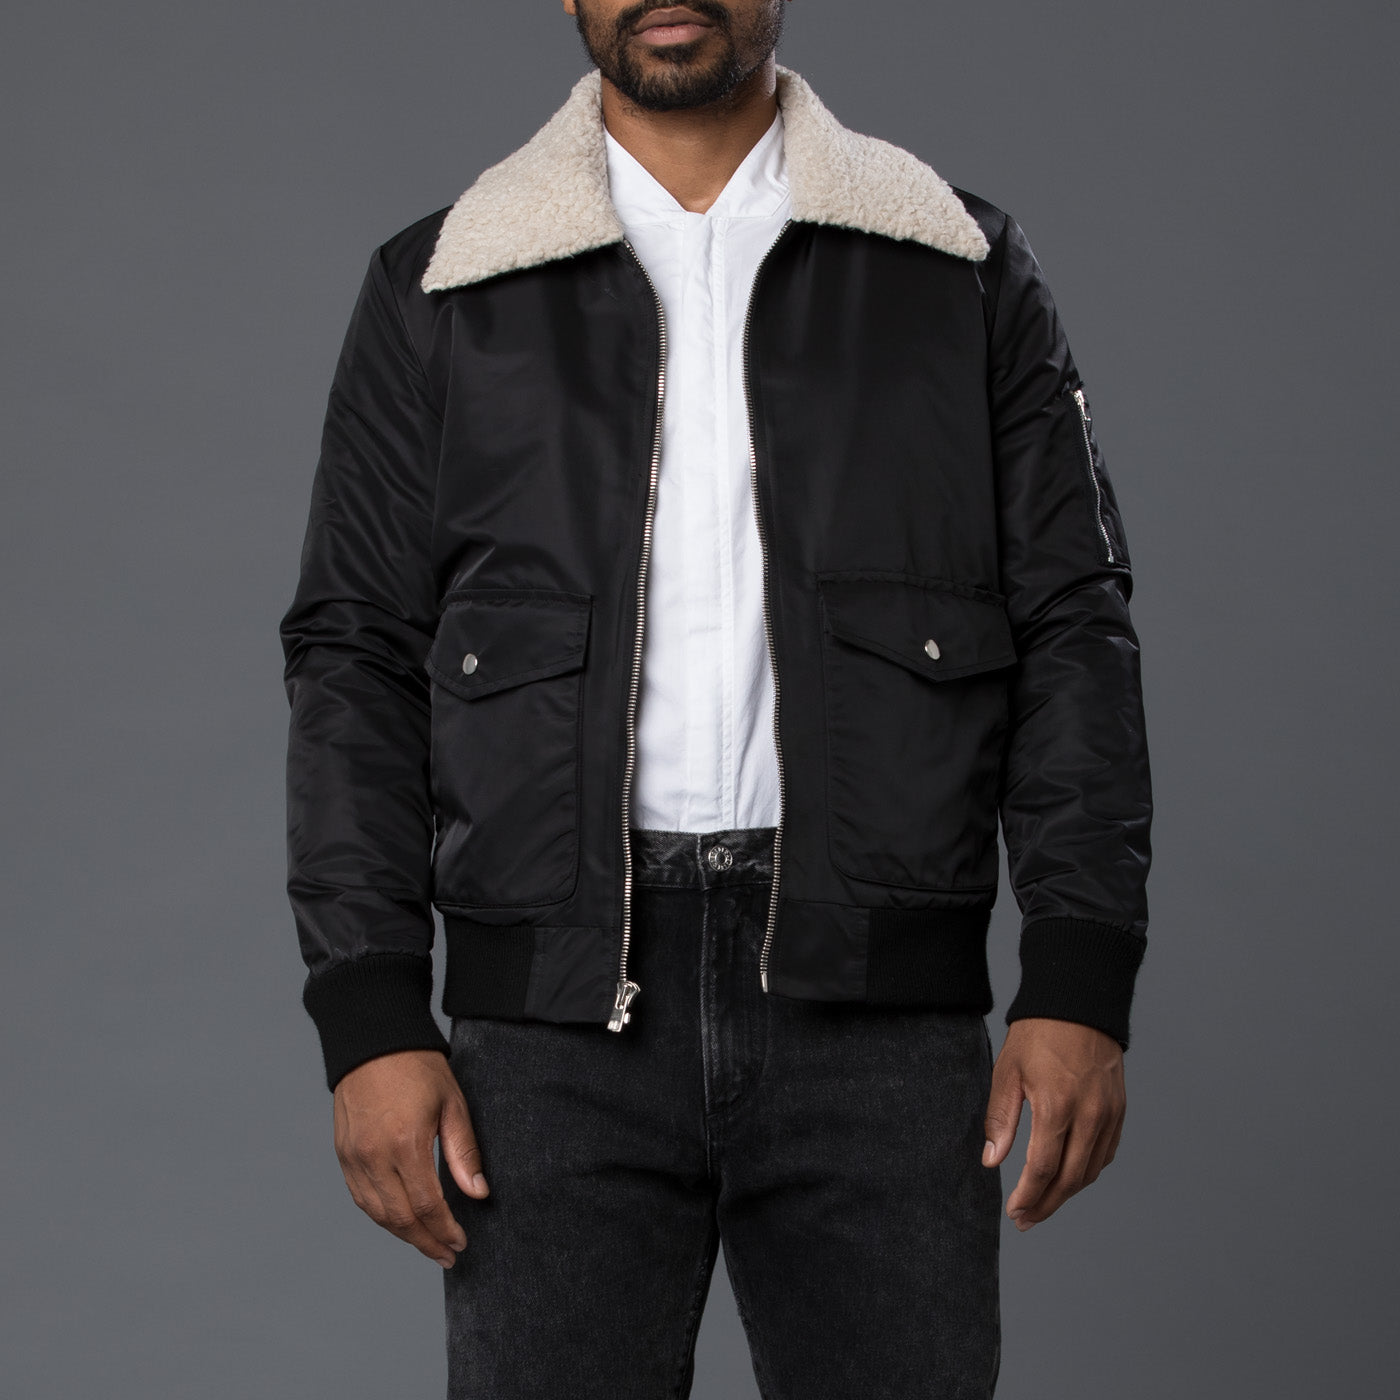 Krammer & Stoudt Black Aviator Bomber Jacket